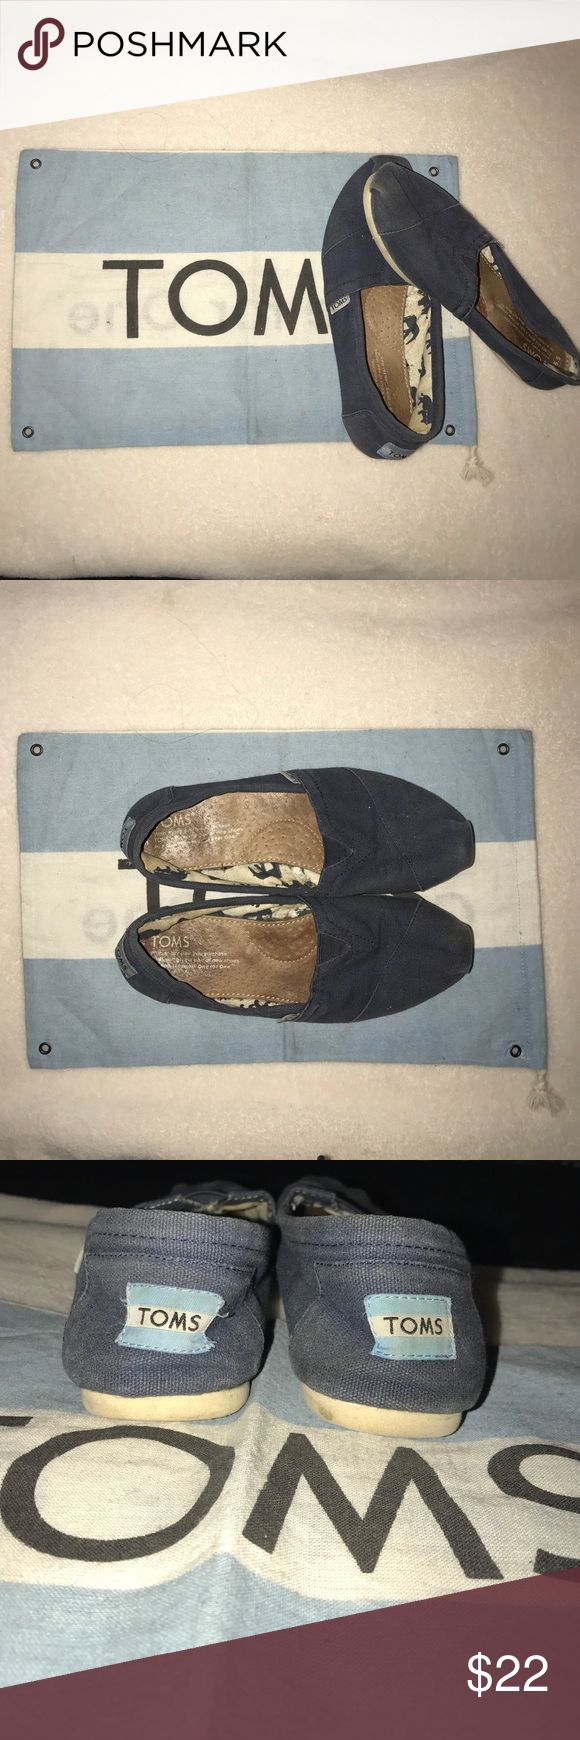 TOMS Color: Navy Blue TOMS Dustbag included TOMS Shoes